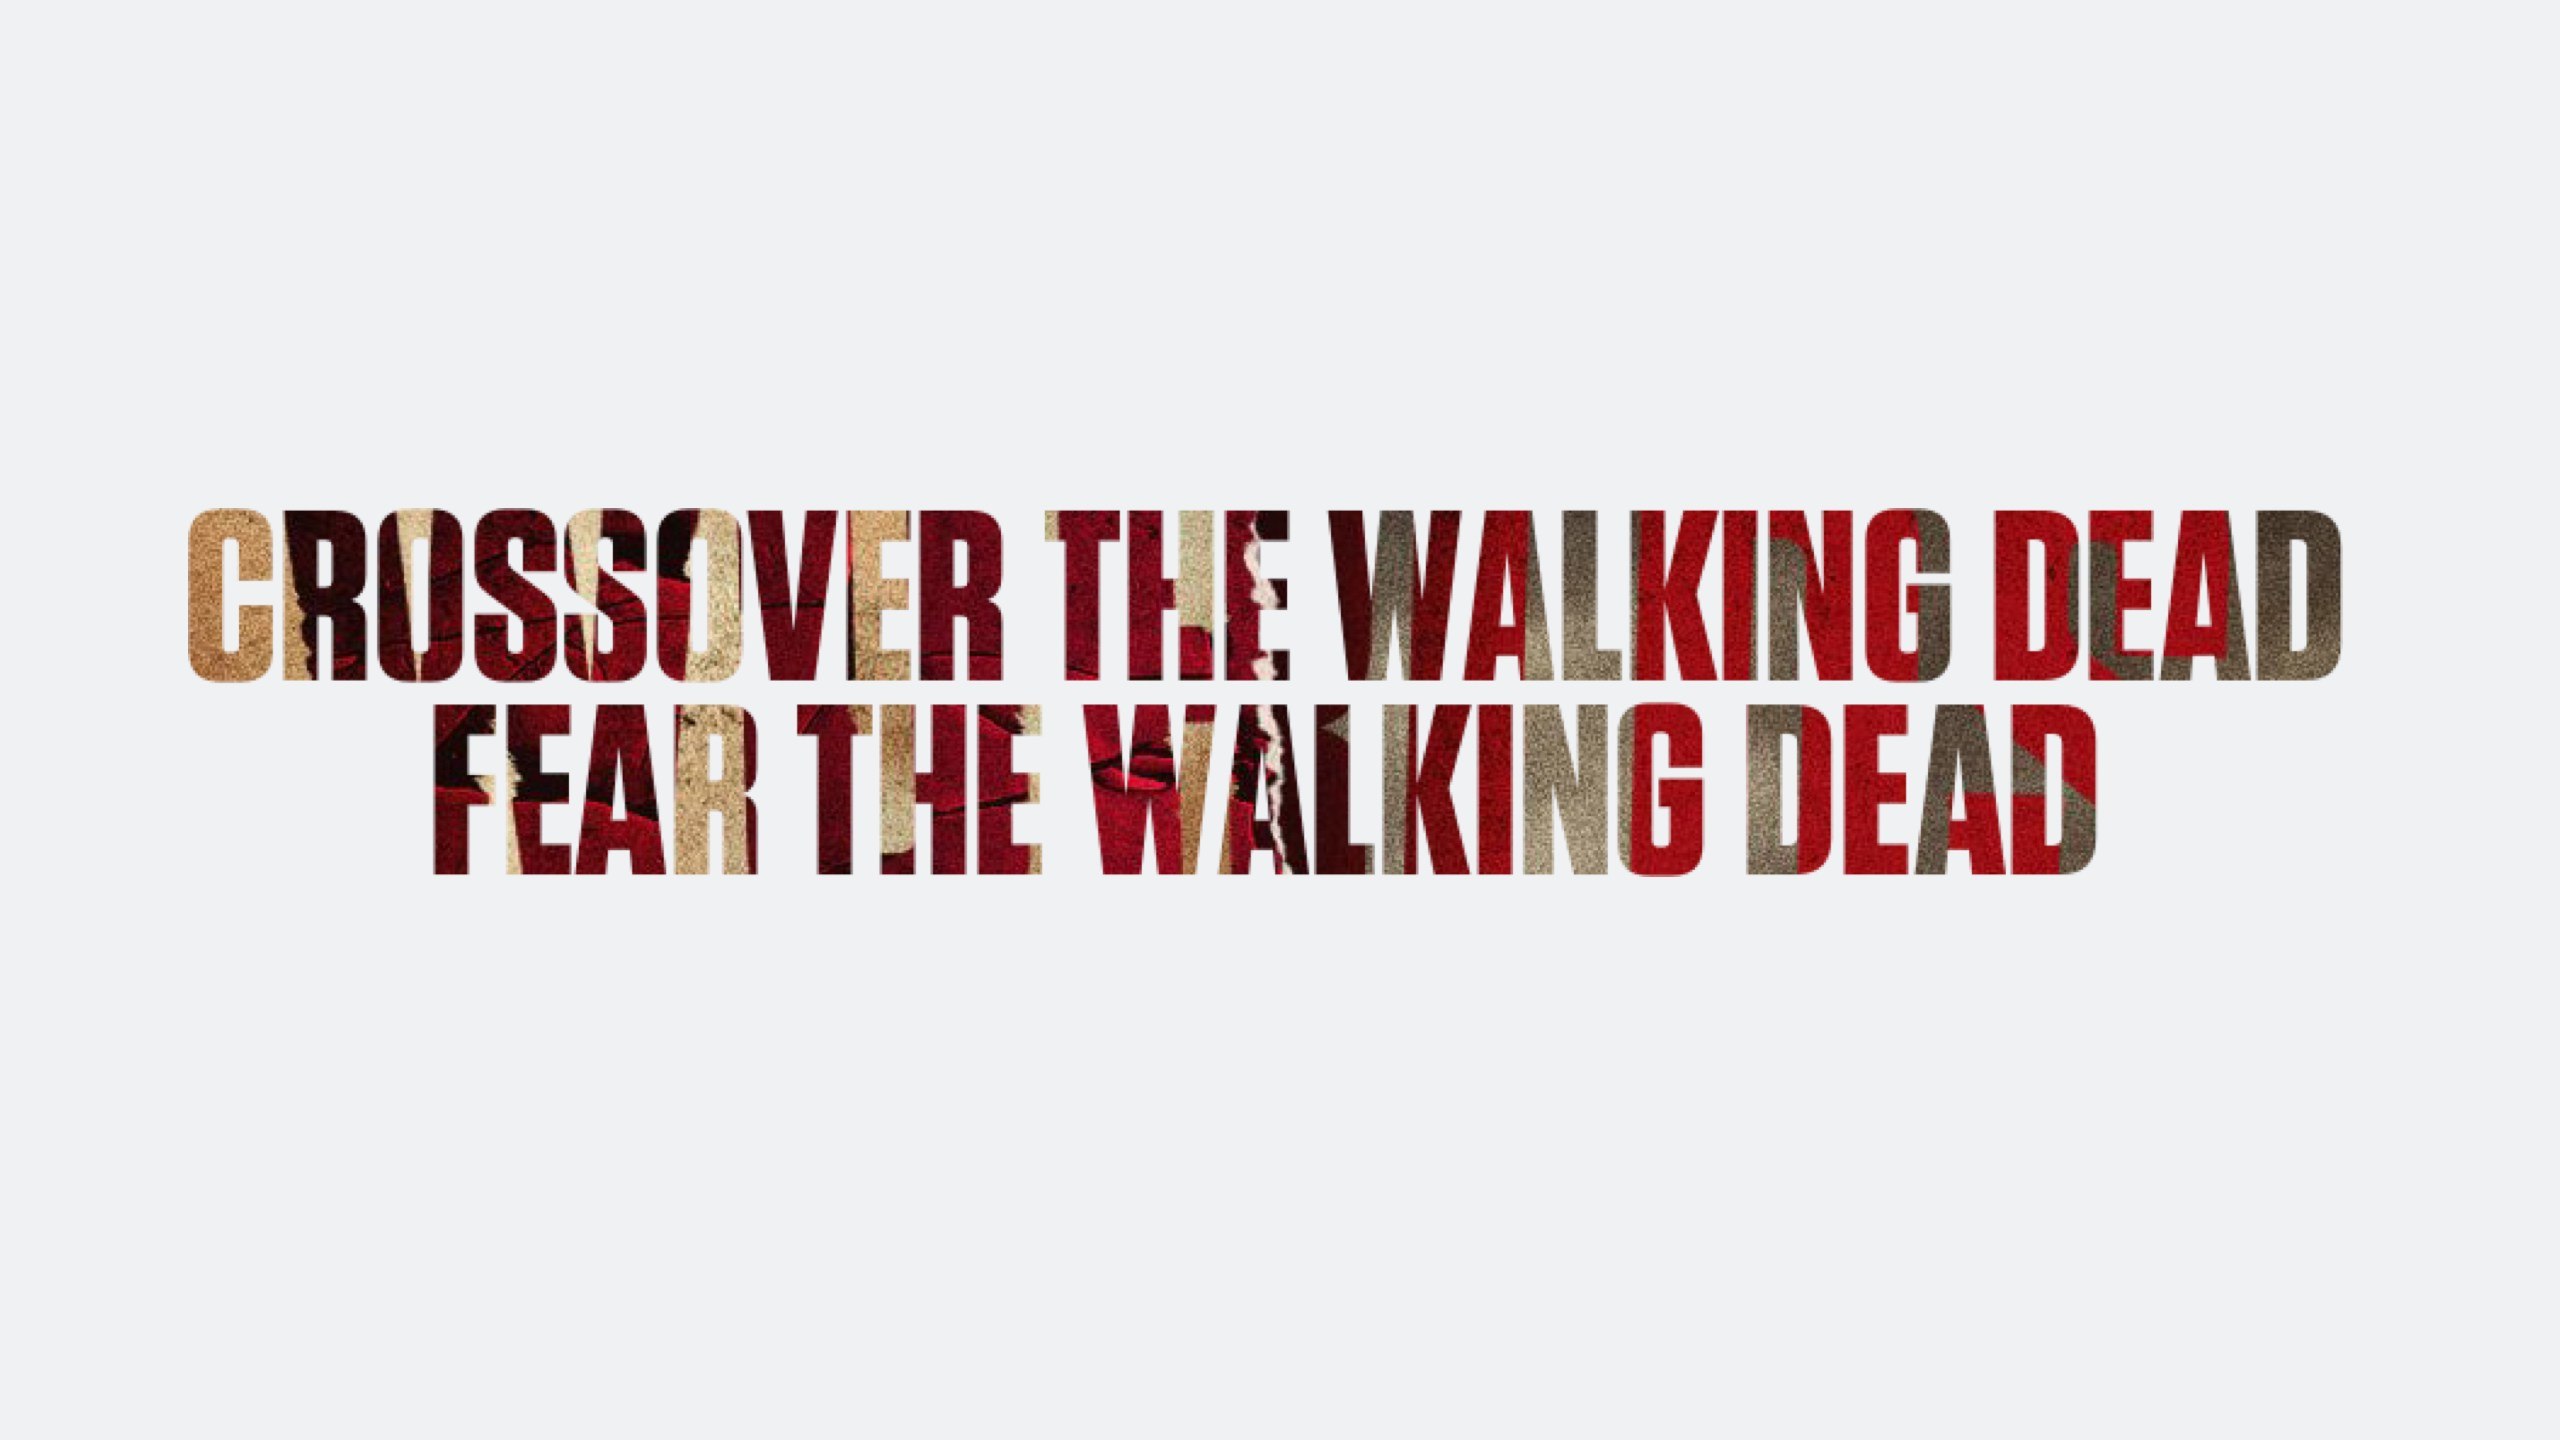 Crossover tra The Walking Dead e Fear The Walking Dead